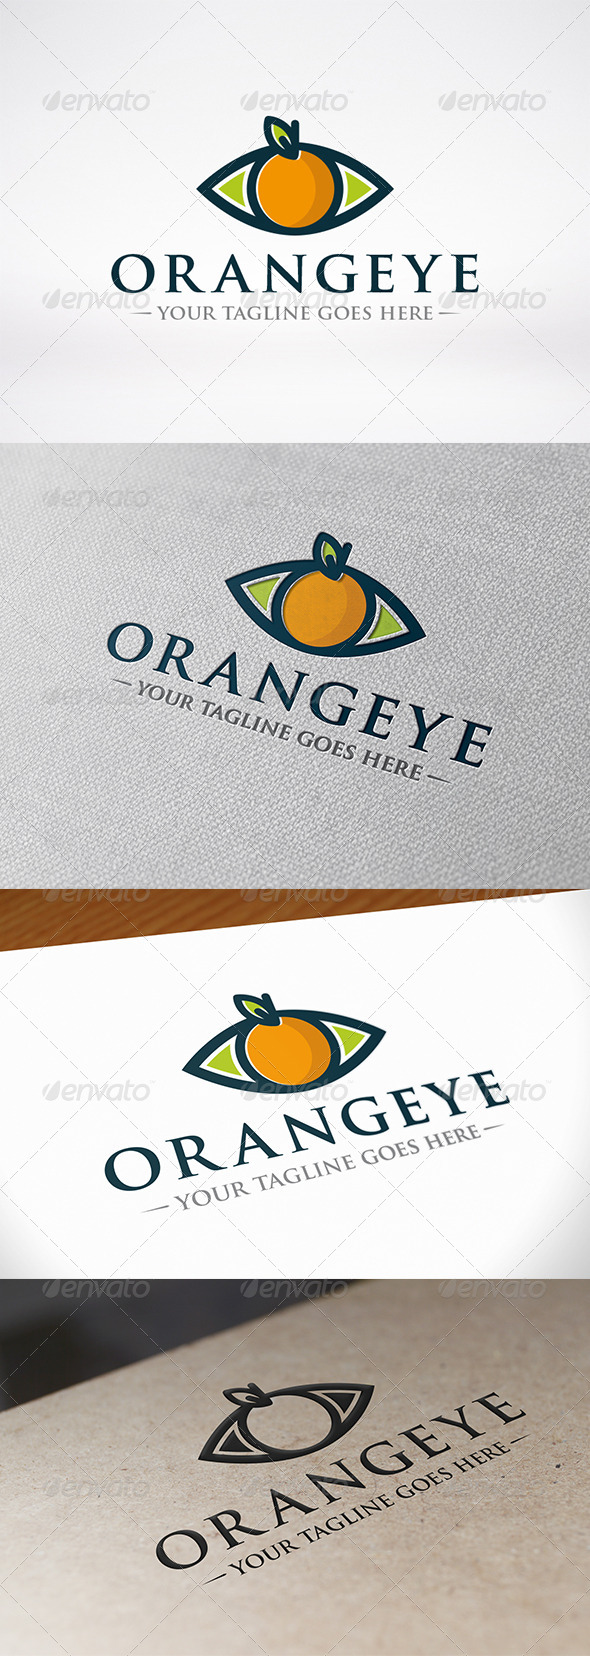 Orange Eye Logo Template - Food Logo Templates